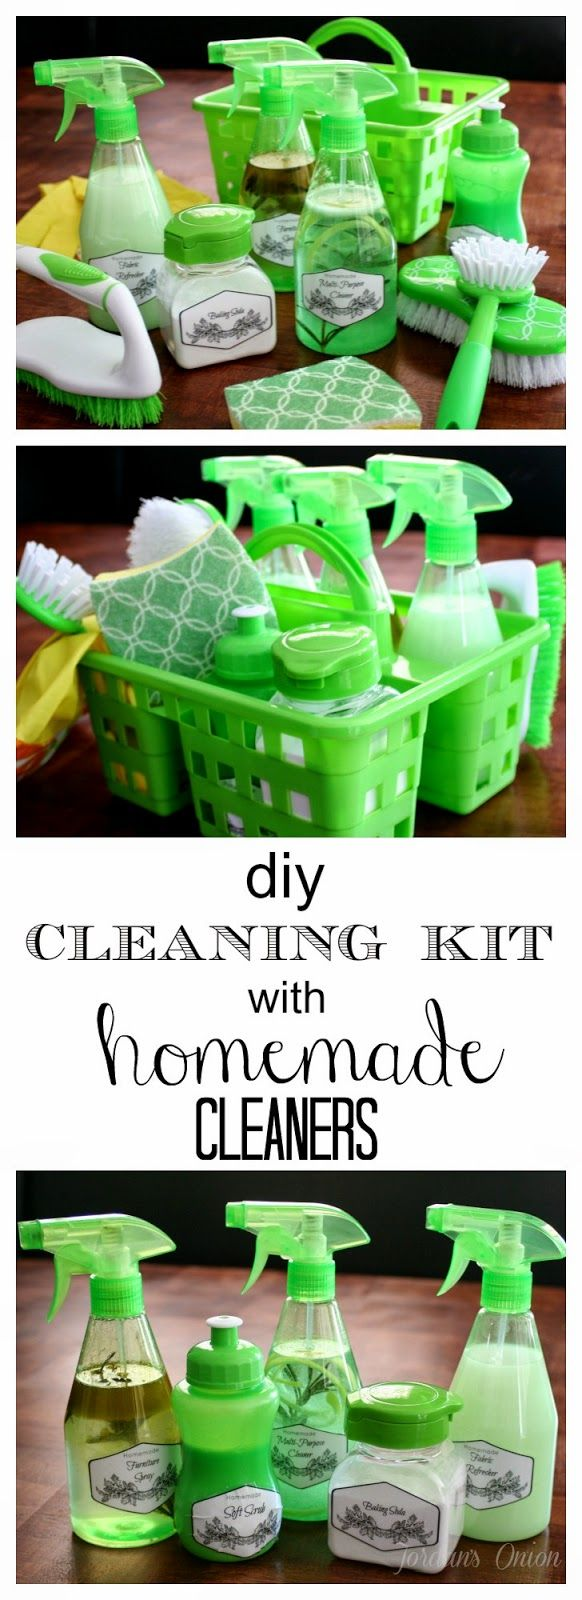 DIY Cleaning Kit with Homemade Cleaners